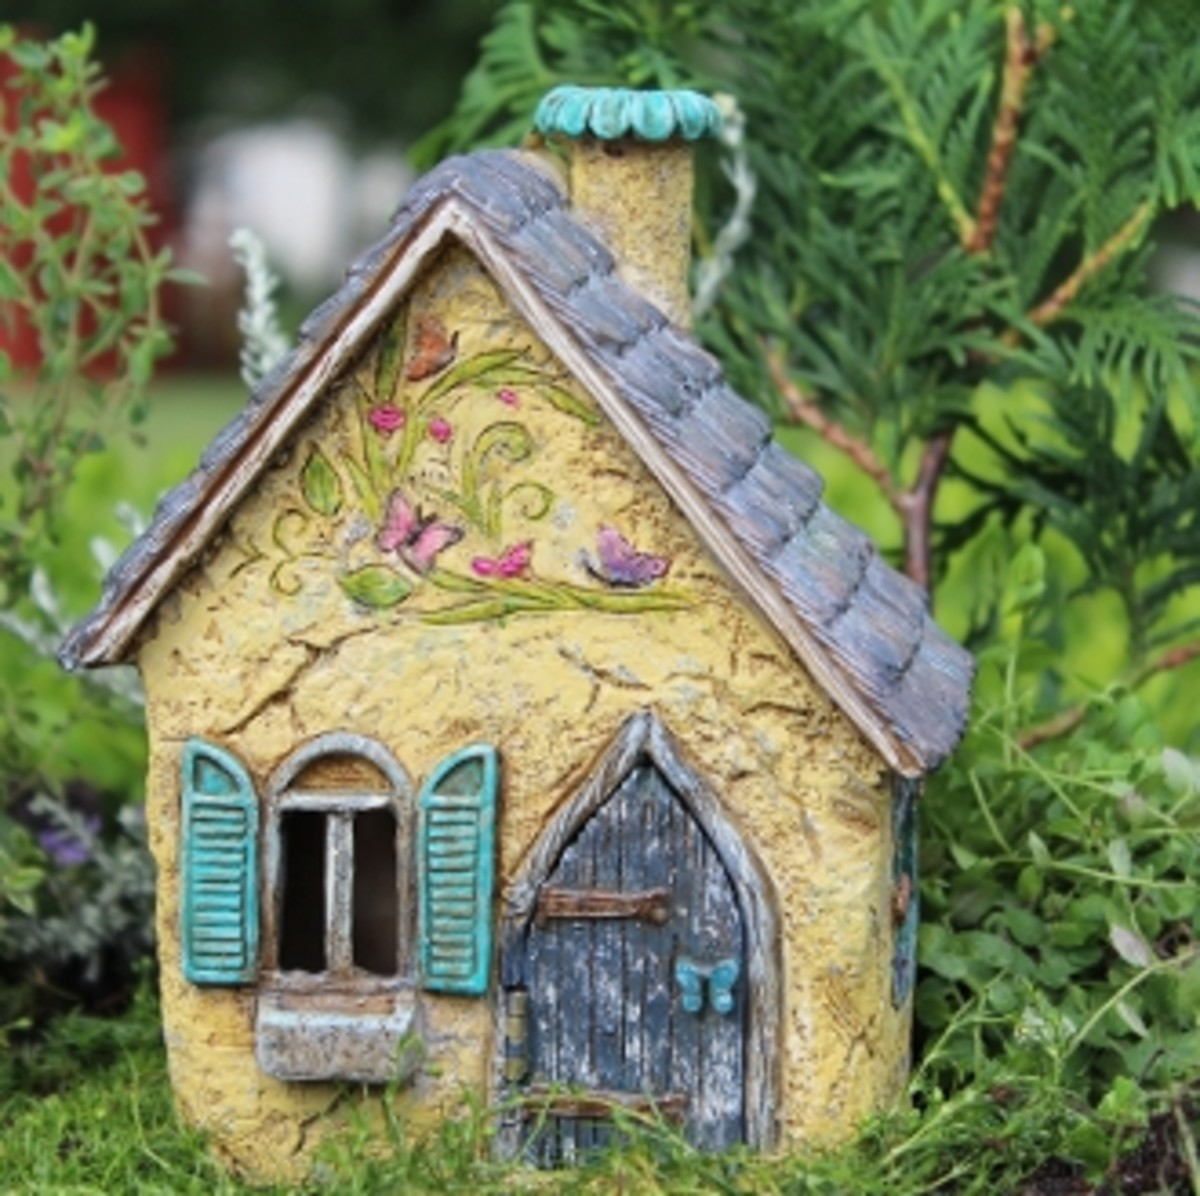 I found this lovely brookside cottage at the fairygardenstore.com.  It's one of my favorites